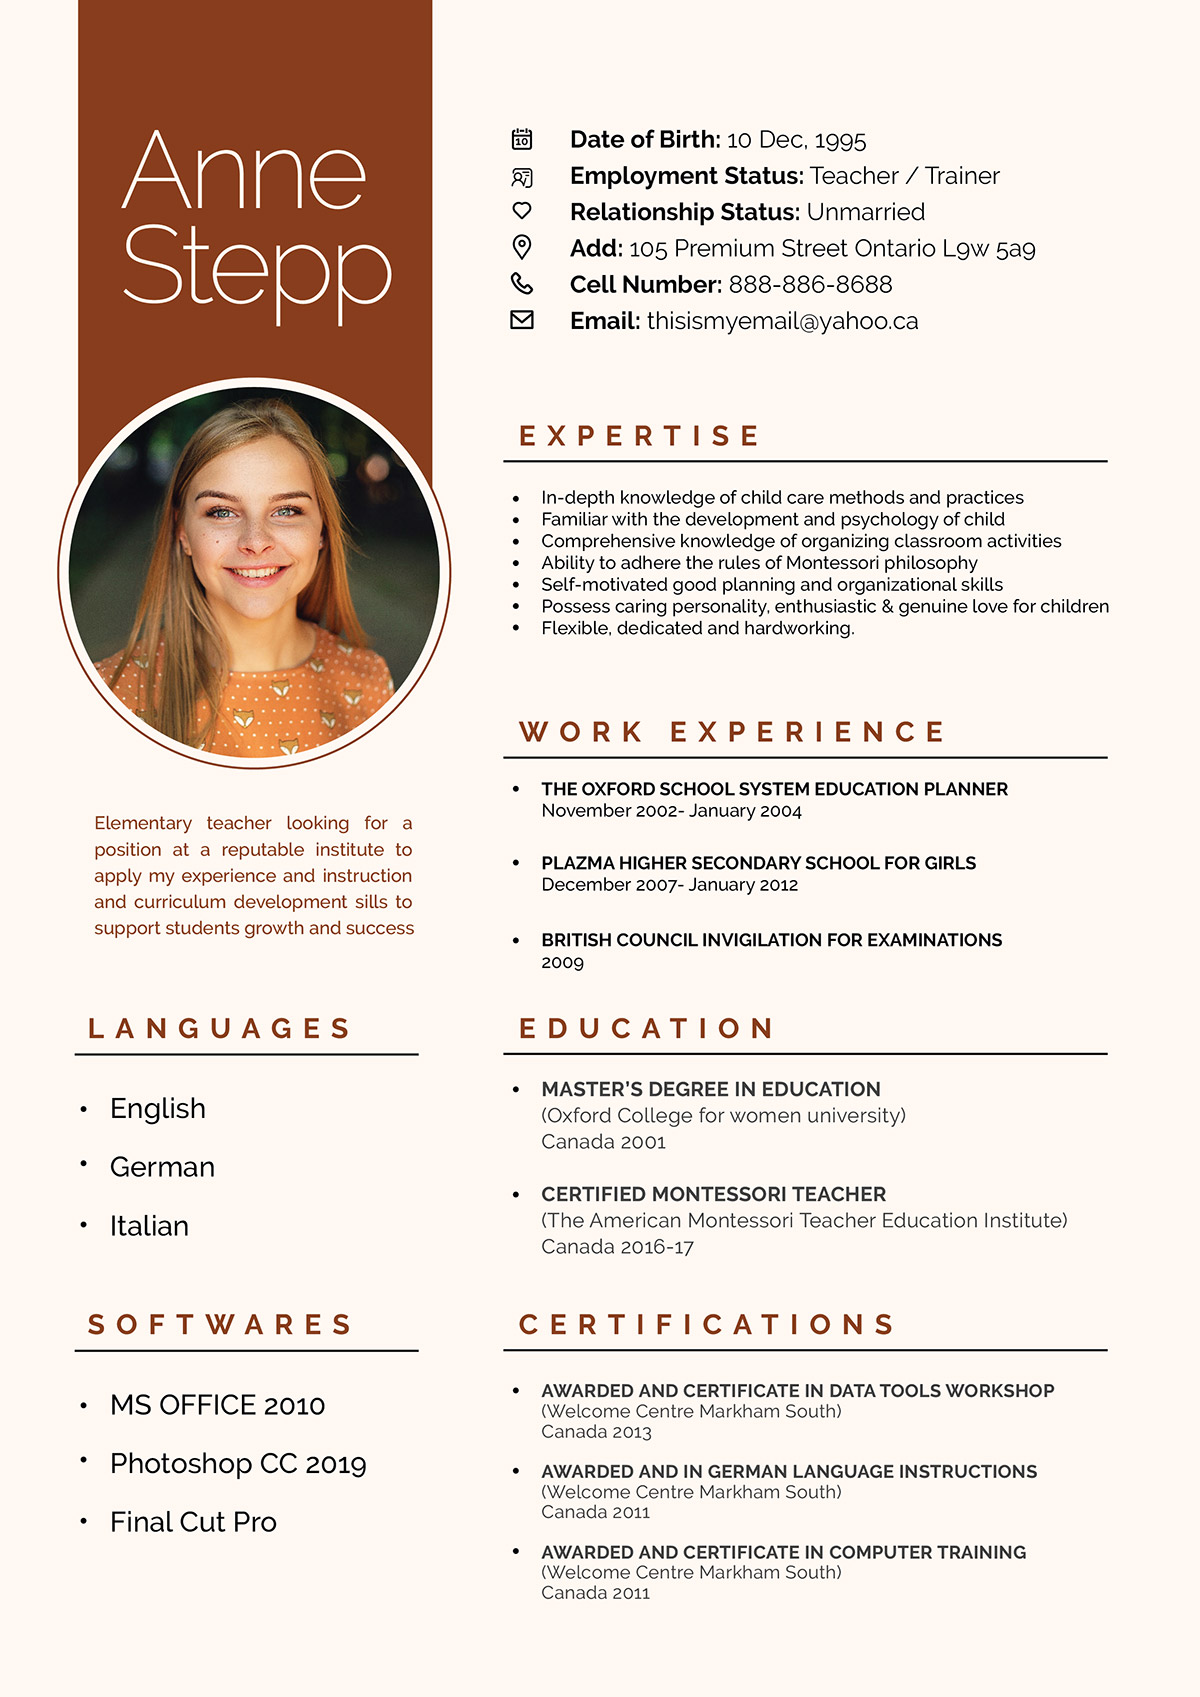 Free Resume Design Template For Teachers And